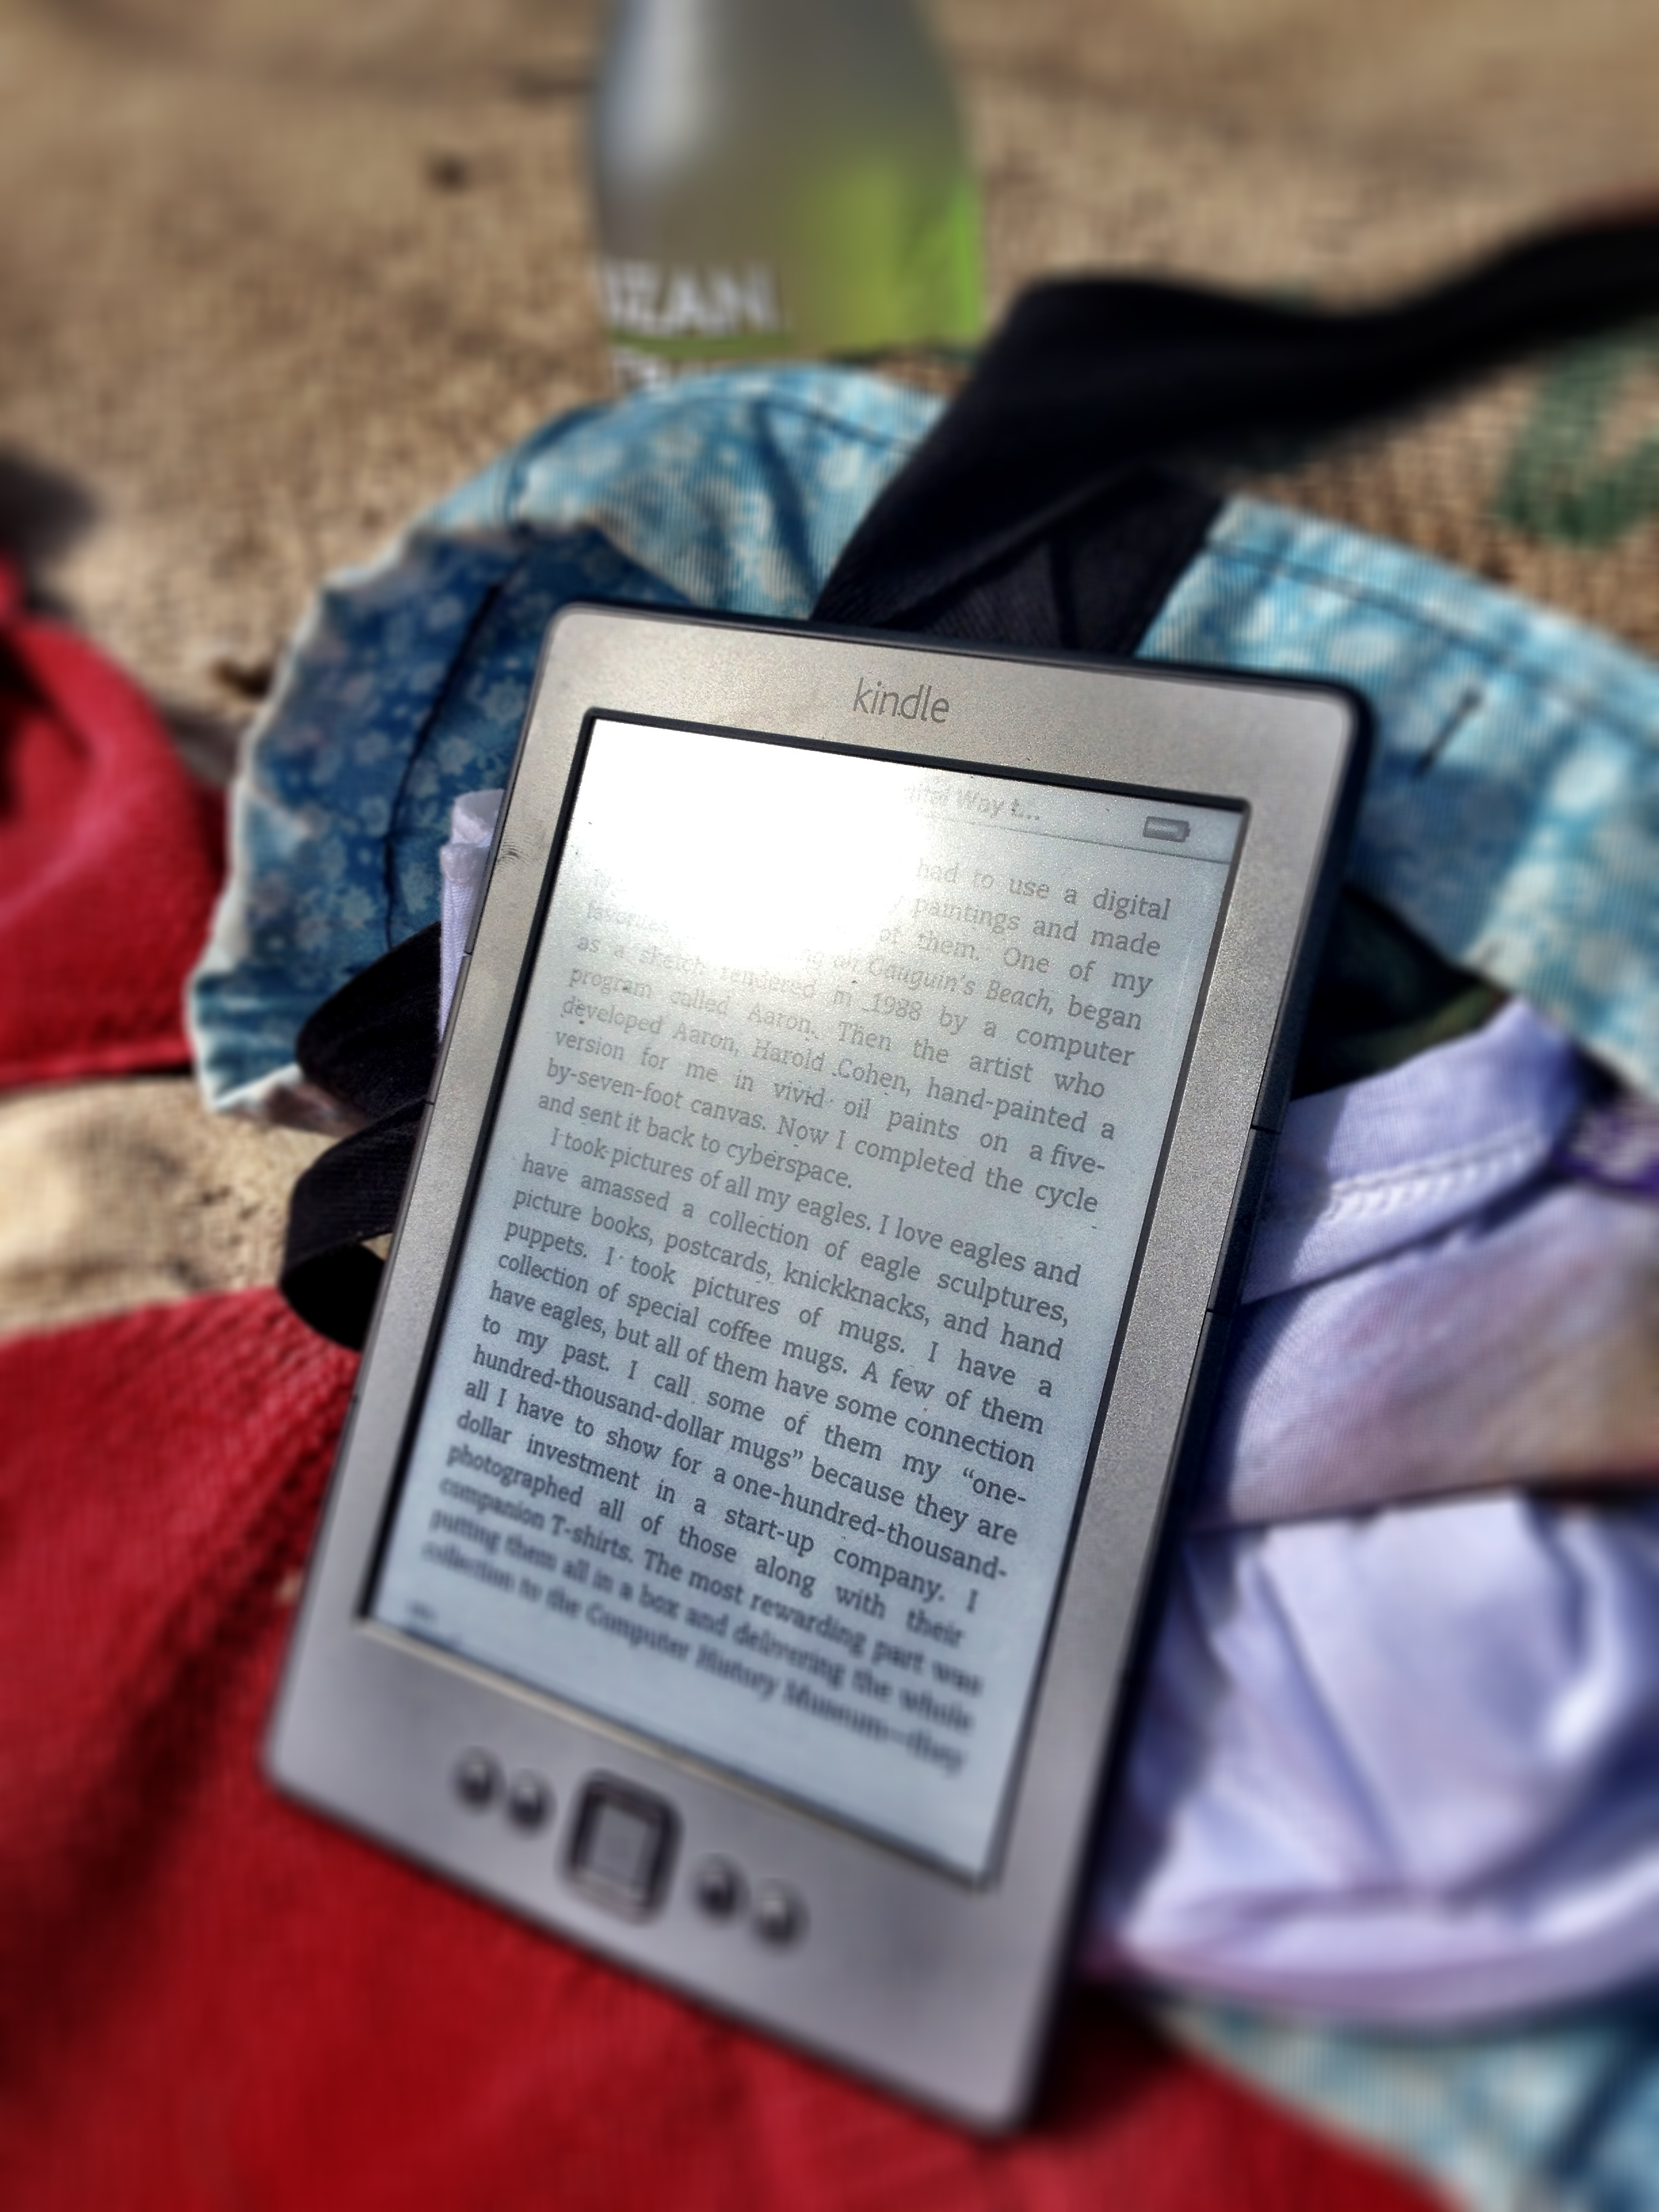 TNW Review: Amazon's newest Kindle, so small and only $79